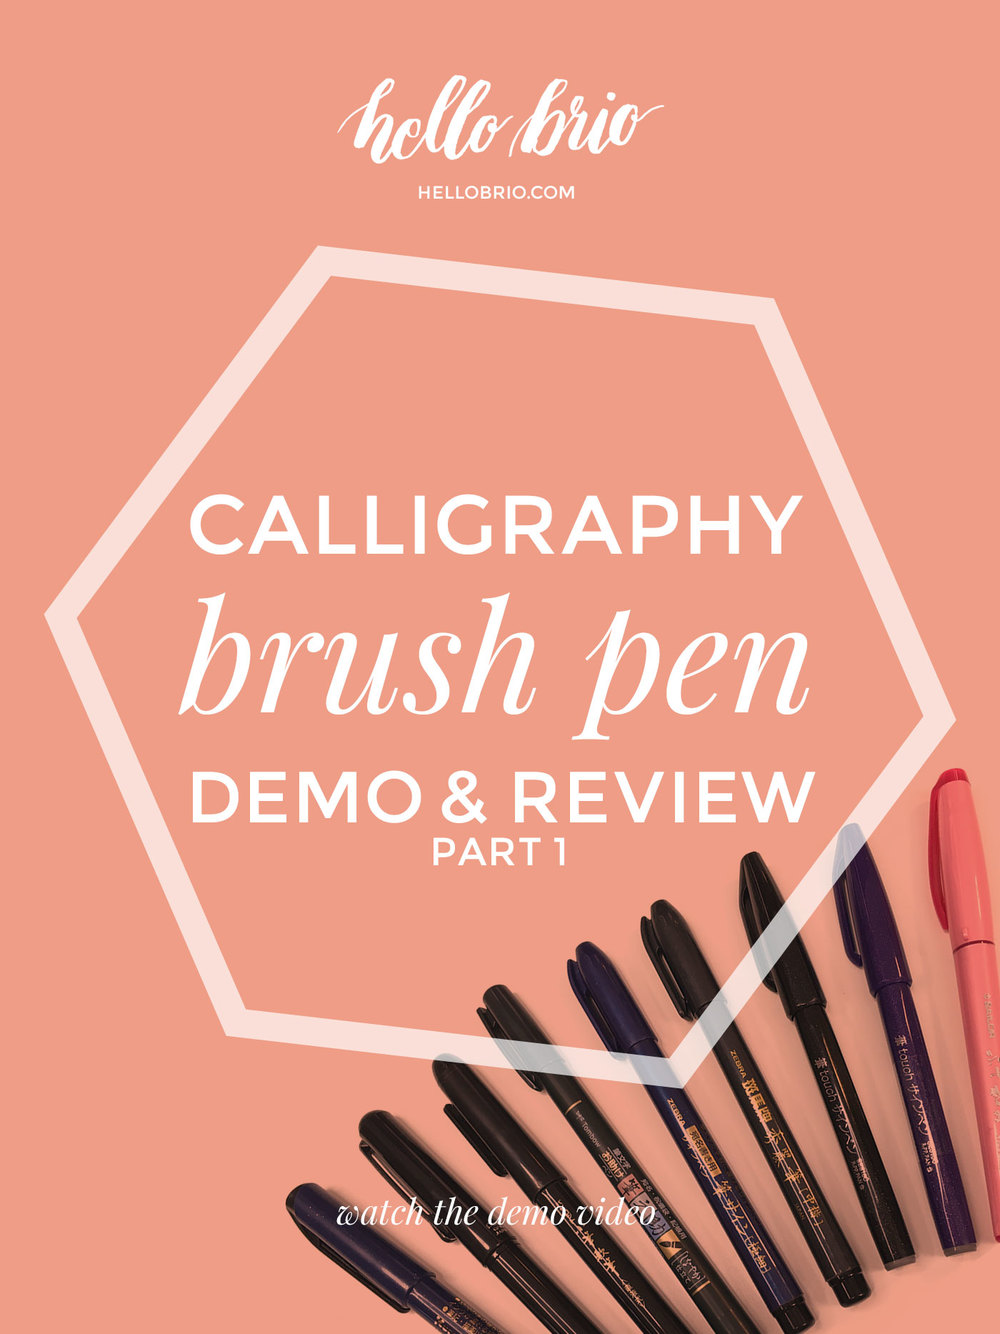 Click to watch a demo of these brush calligraphy pens from JetPens, featuring popular brush pens made especially for brush lettering and illustration.